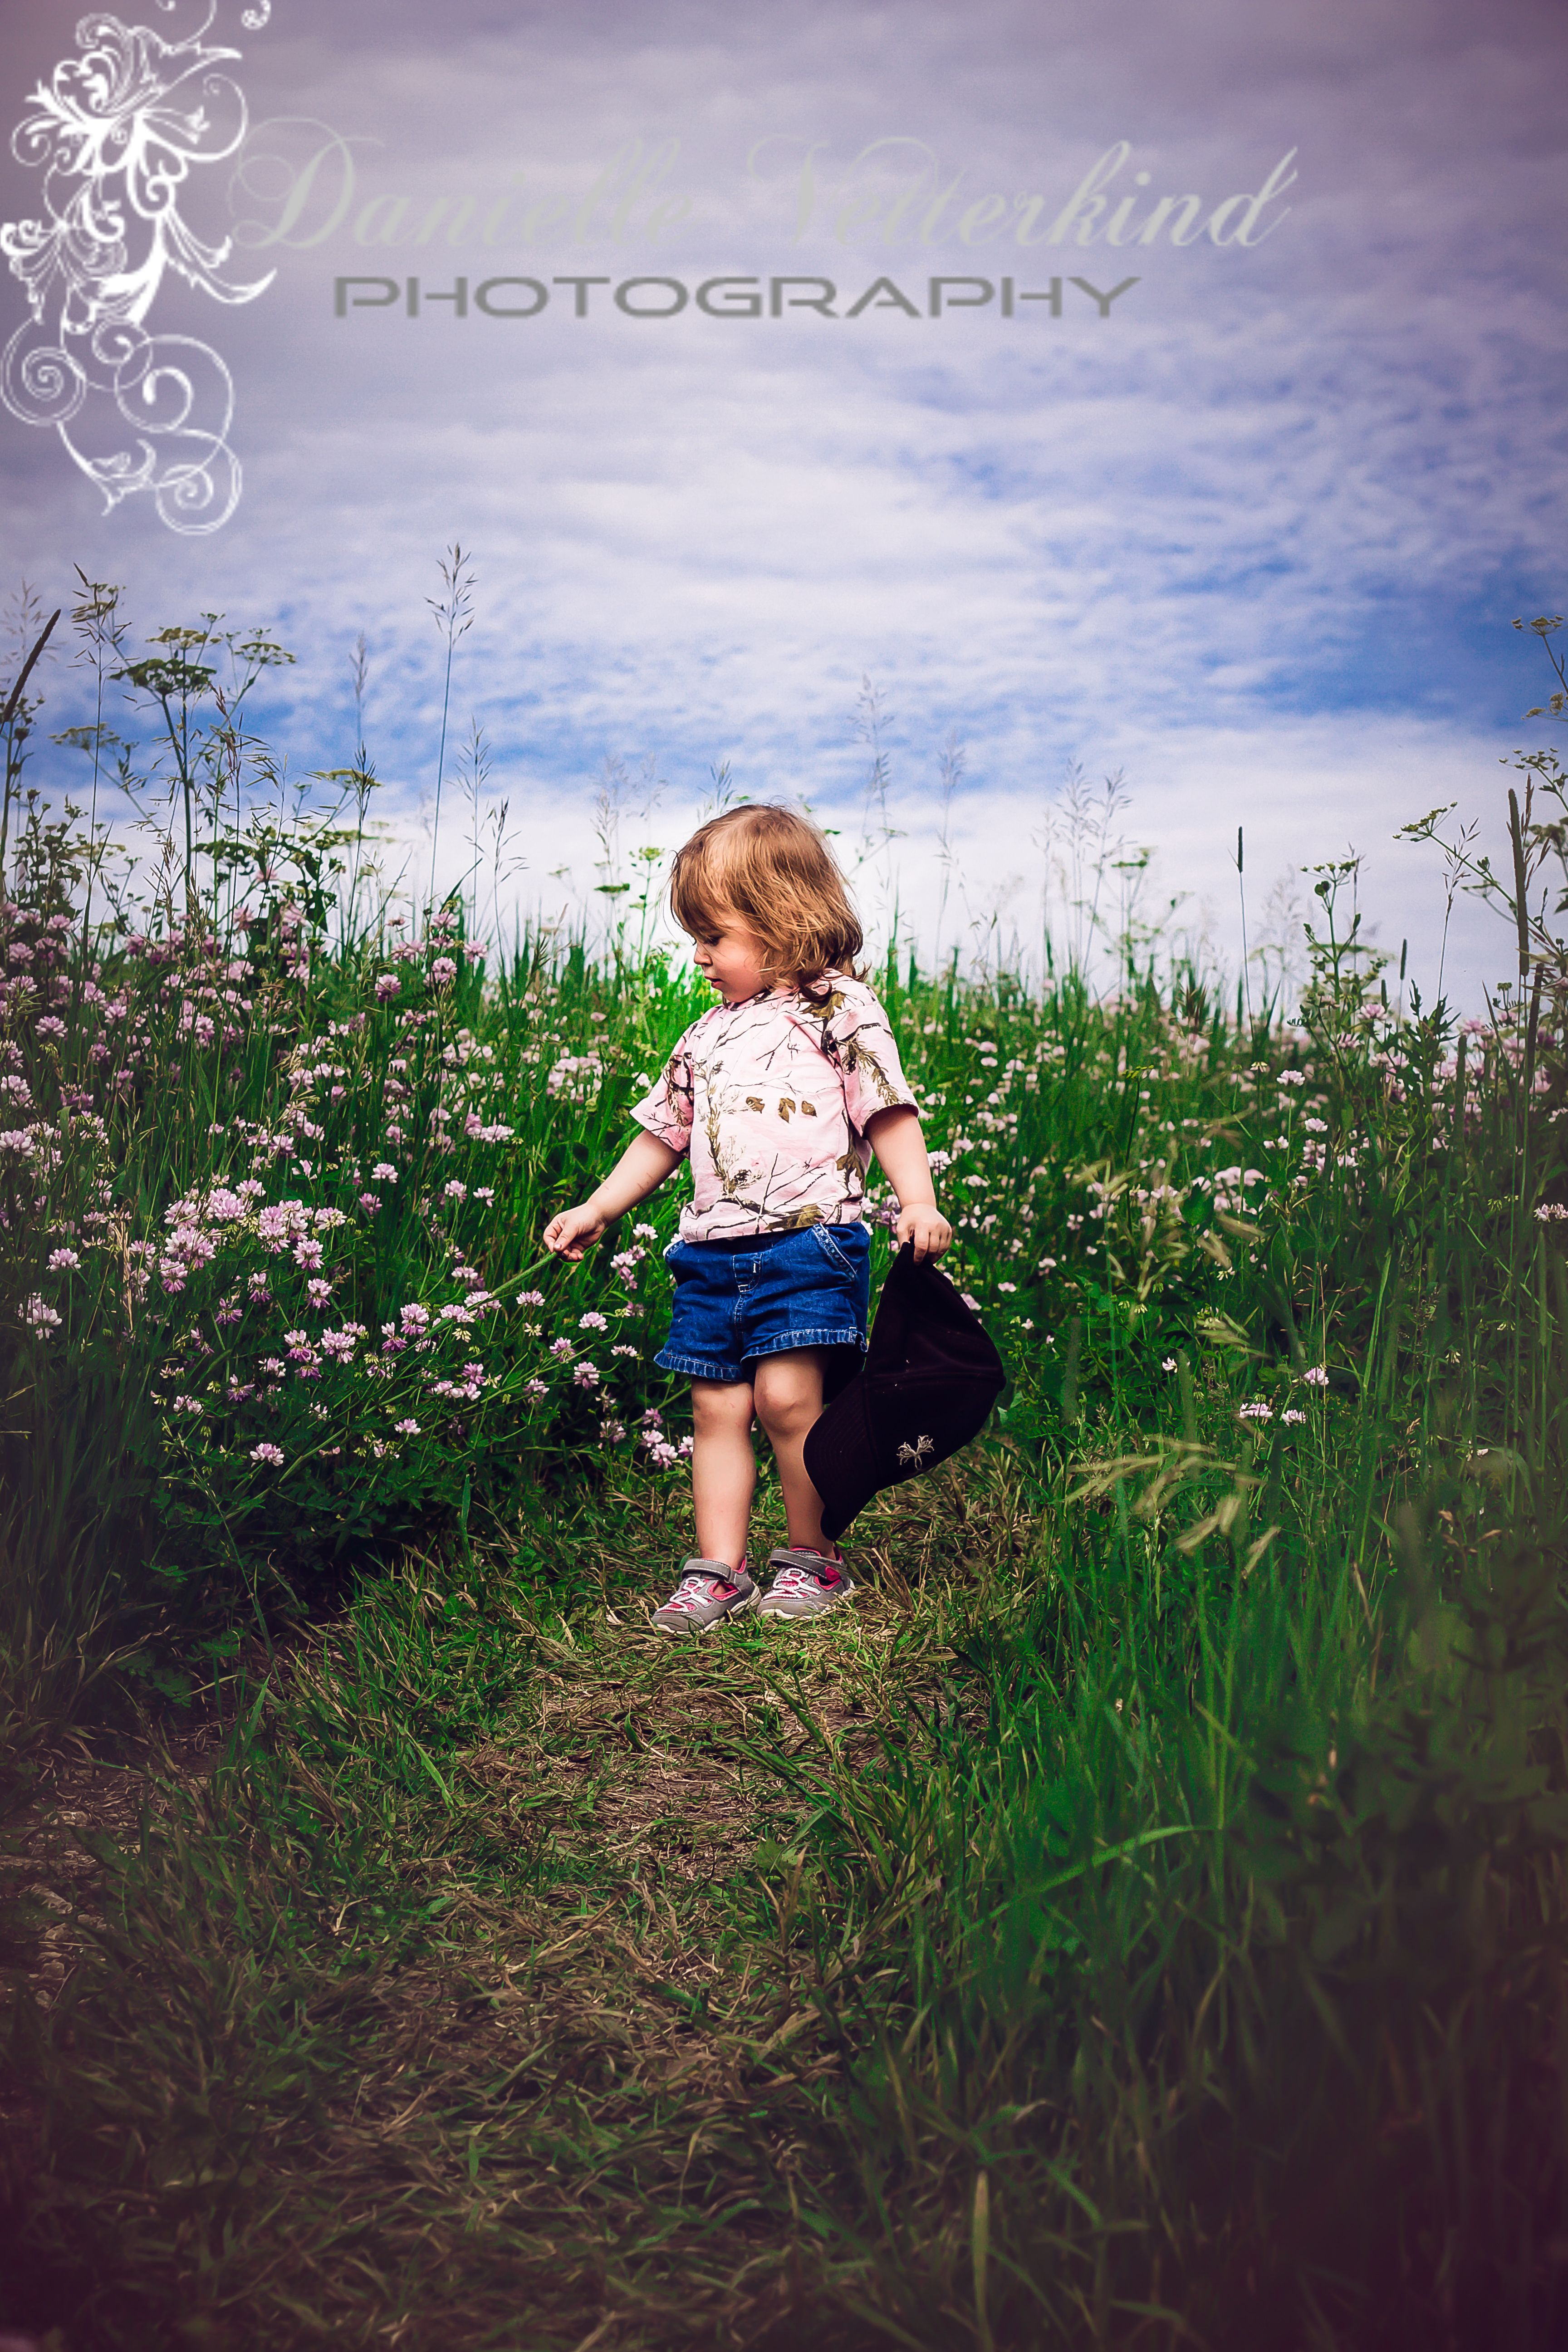 Little girl in a field of flowers photo by: danielle vetterkind photography